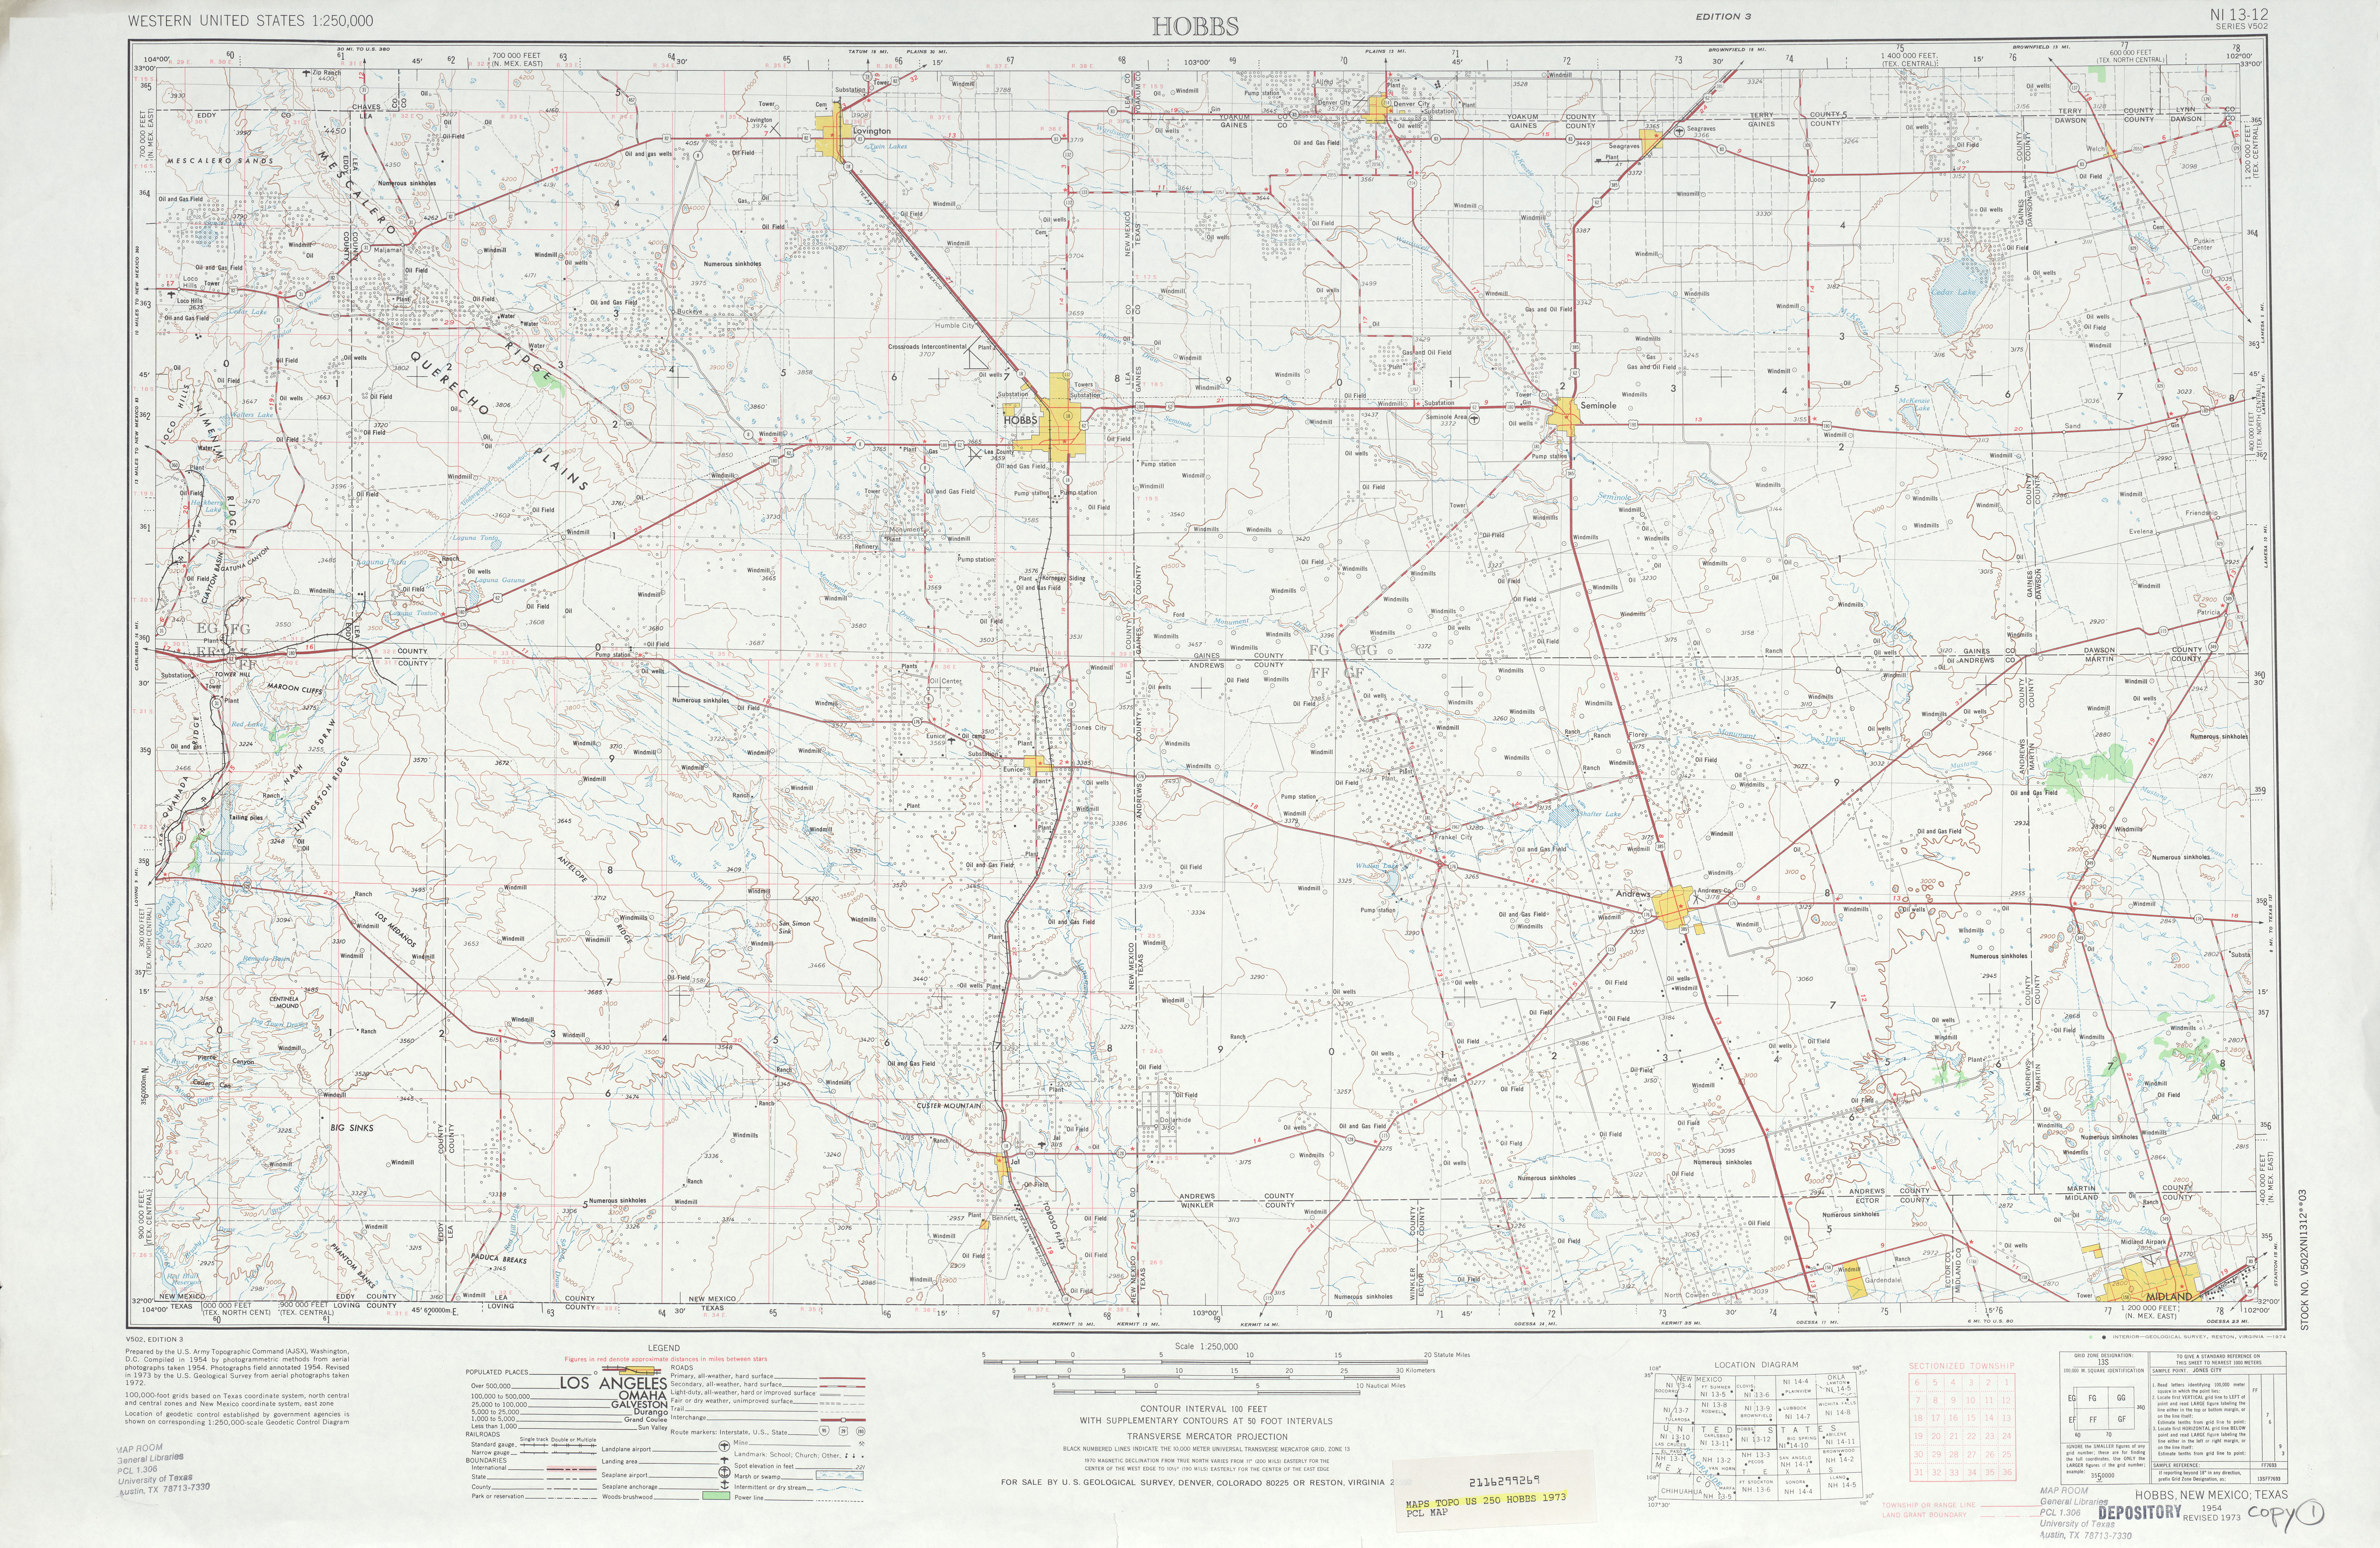 Hobbs Topographic Map Sheet, United States 1973